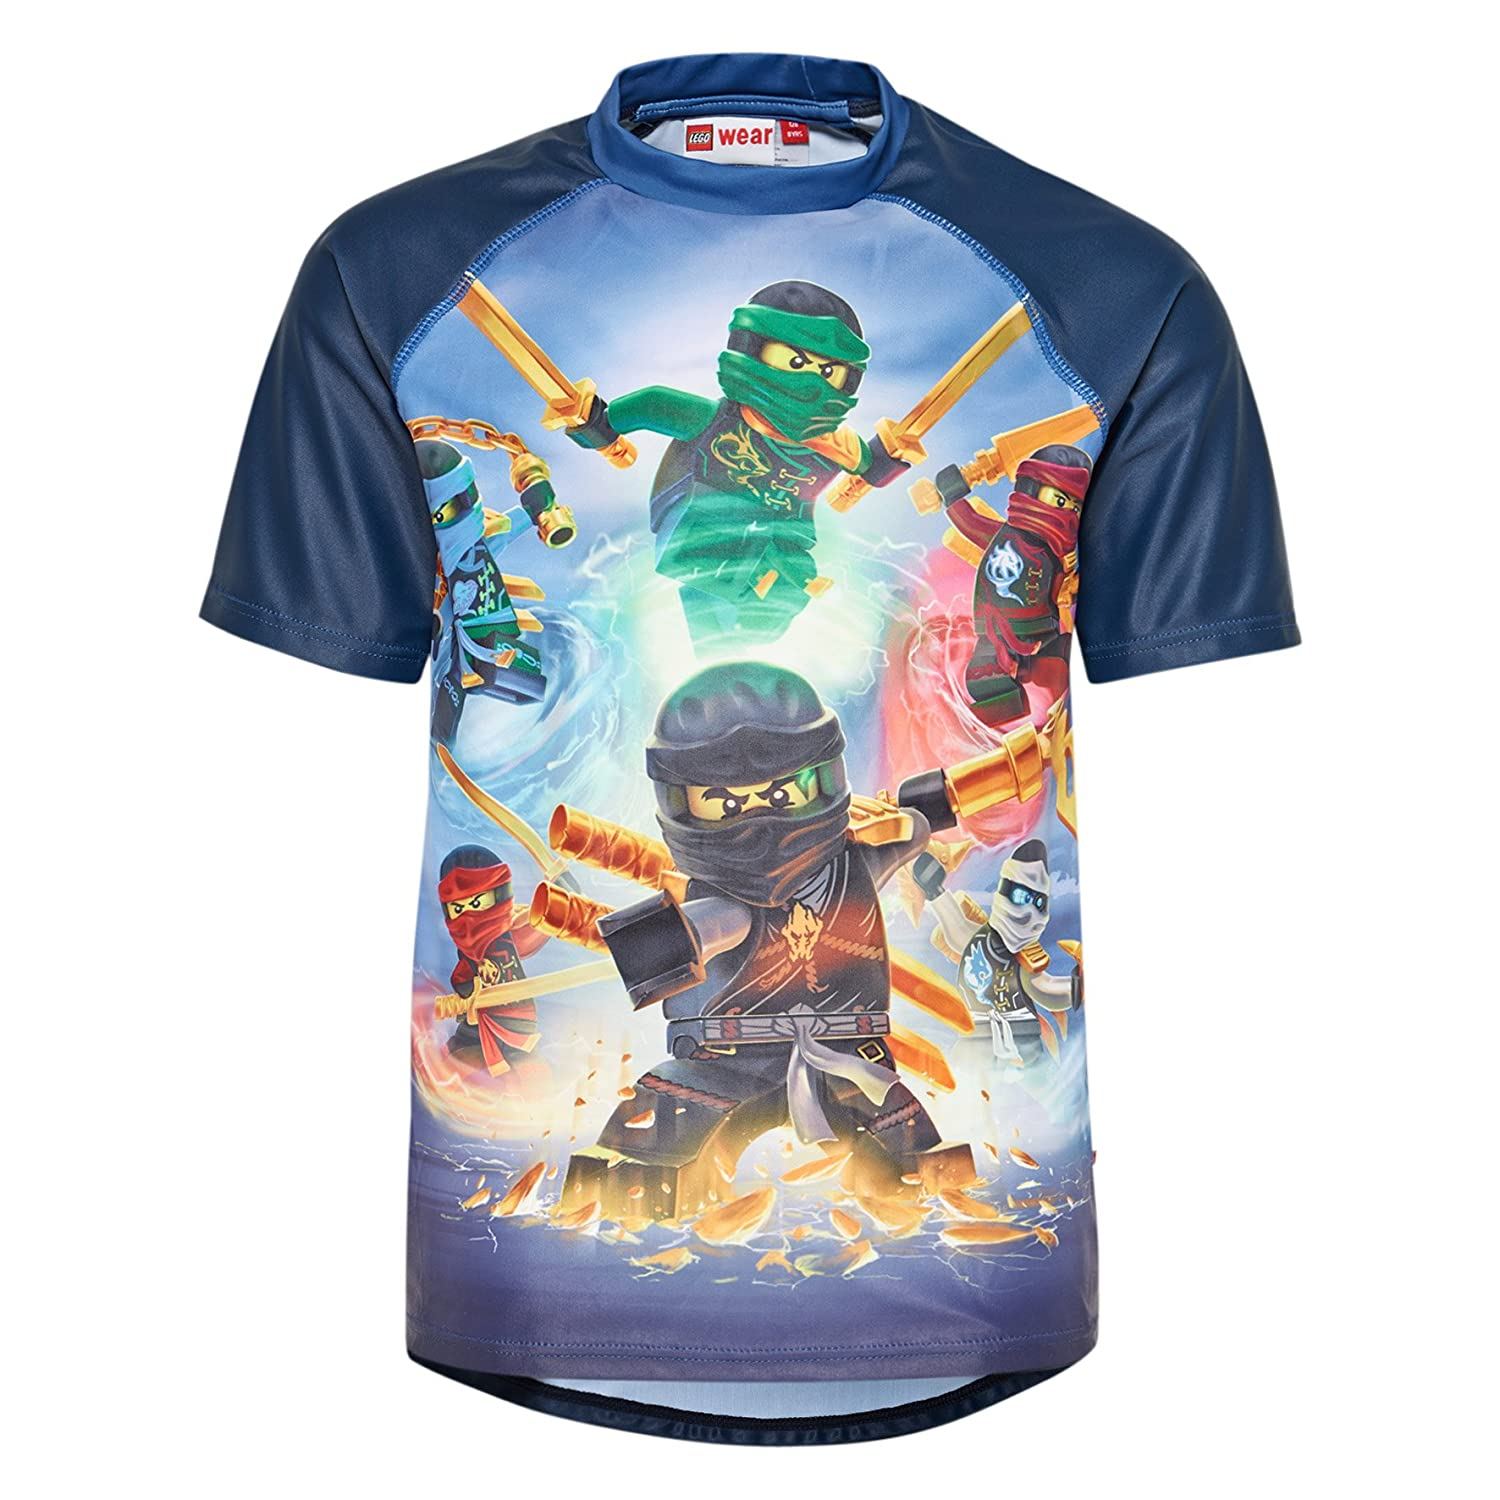 Lego Wear Thomas 420- Sun wear, Boys T-Shirt, 20229